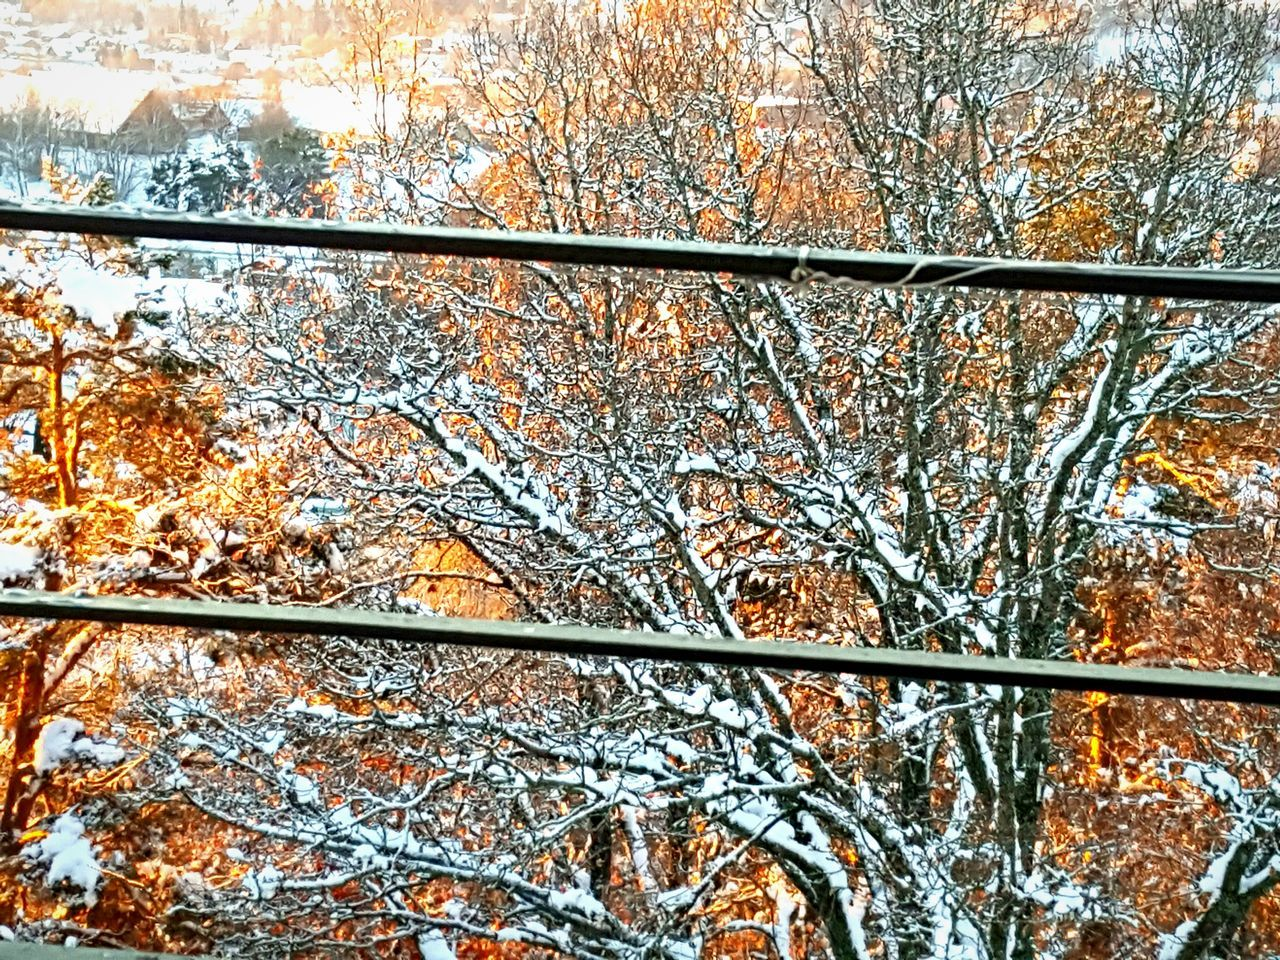 Outdoors Nature Vibrant Color Leaf Orange Color Snowy Day Morninglight Shadows & Lights Outdoors Life Snow Covered Sweden